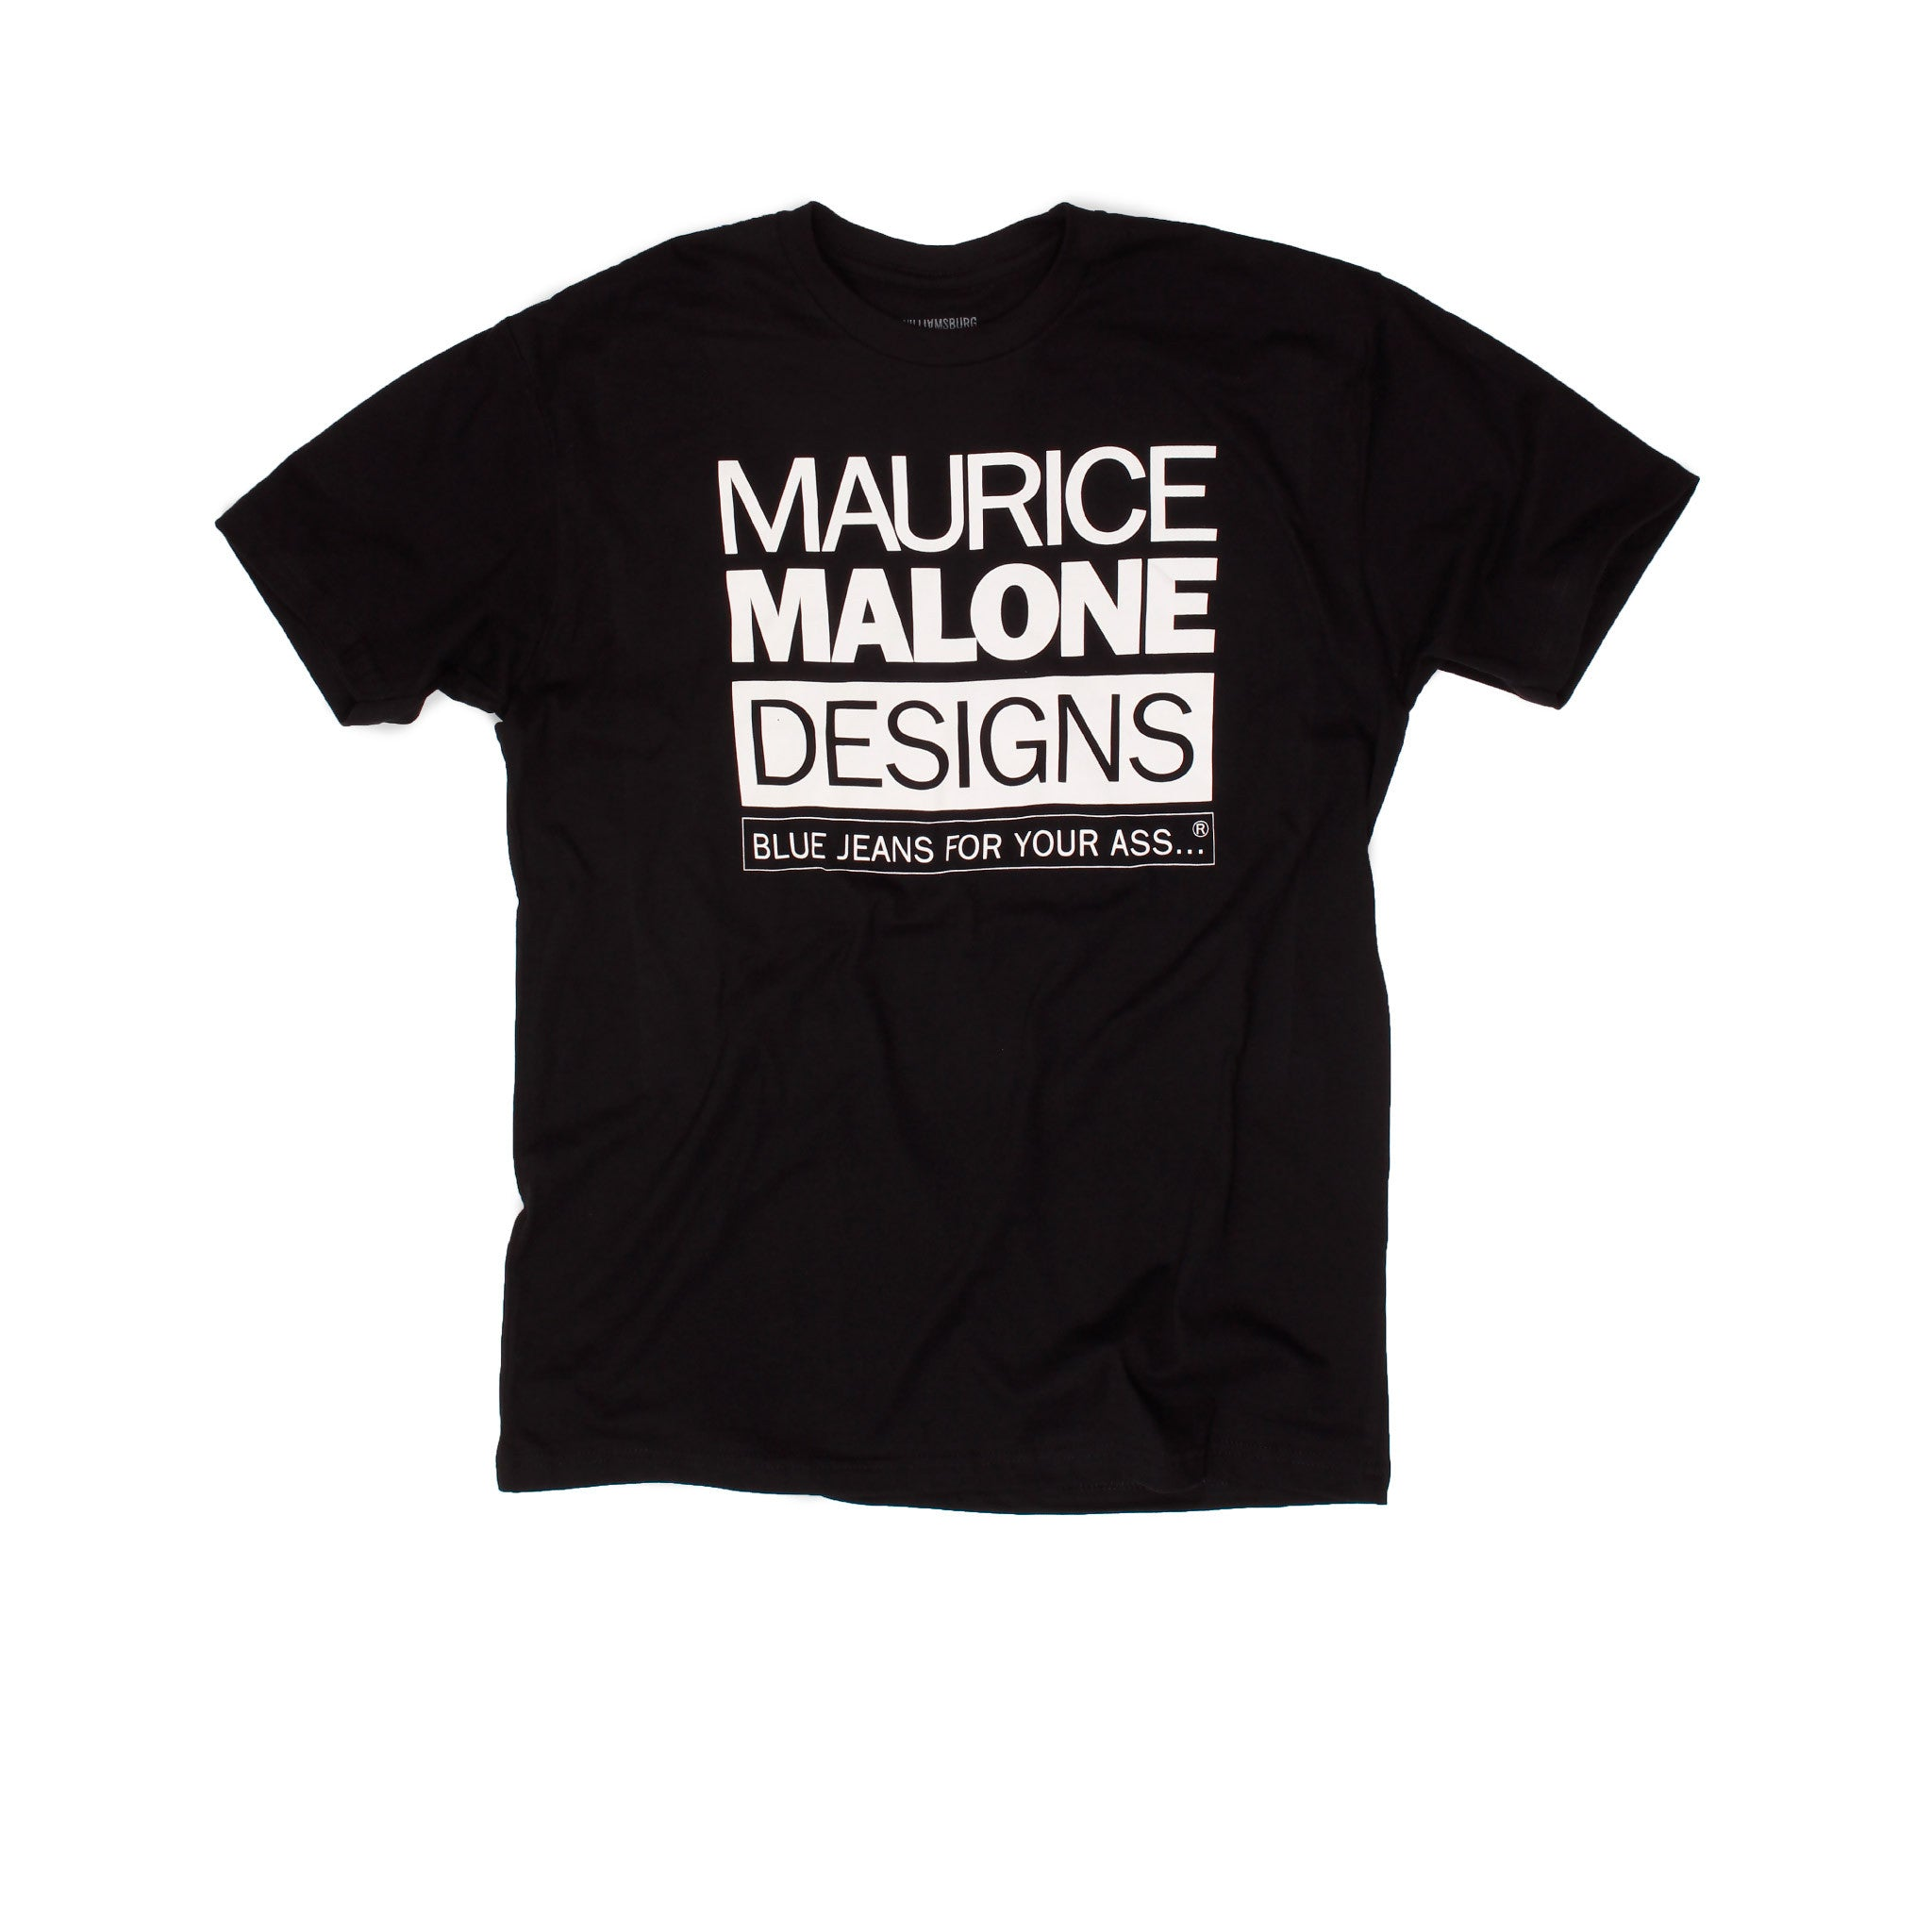 Maurice Malone black 90s hip hop fashion logo t-shirt